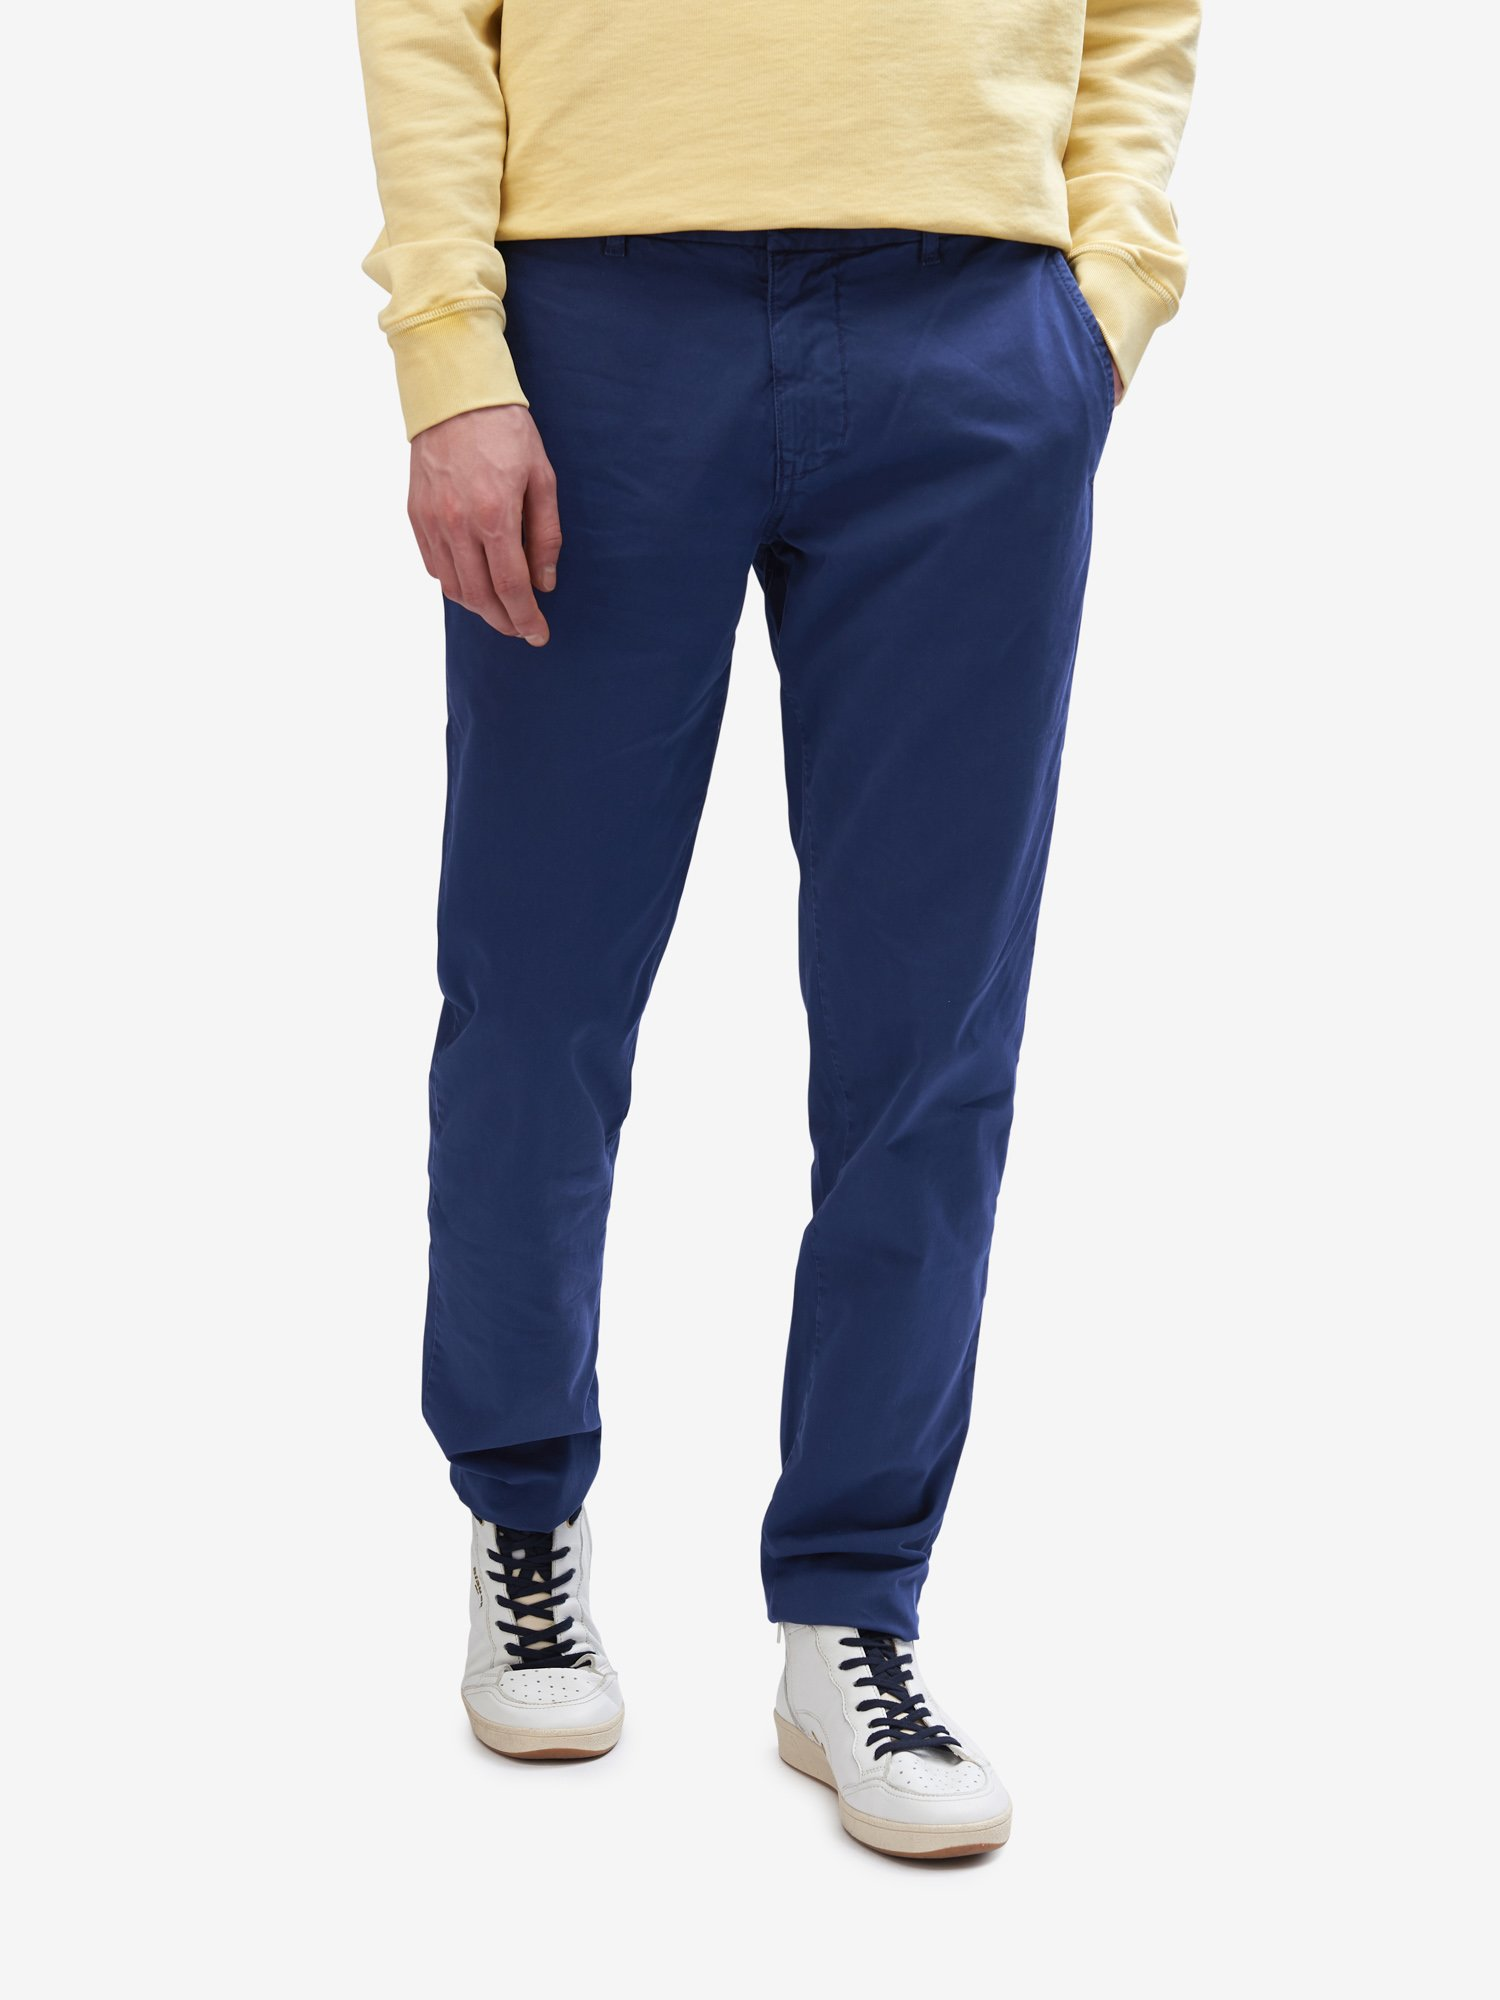 LONG COTTON TROUSERS - Blauer